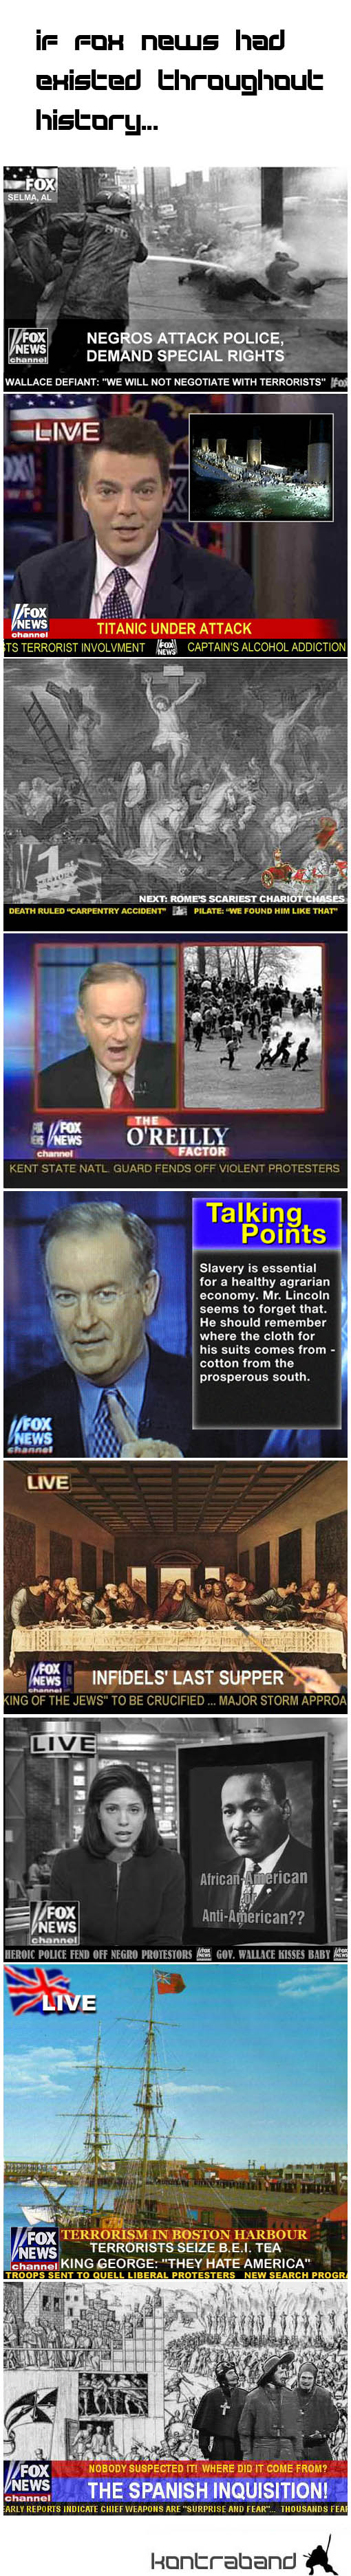 pictures_fox_news_history1.jpg